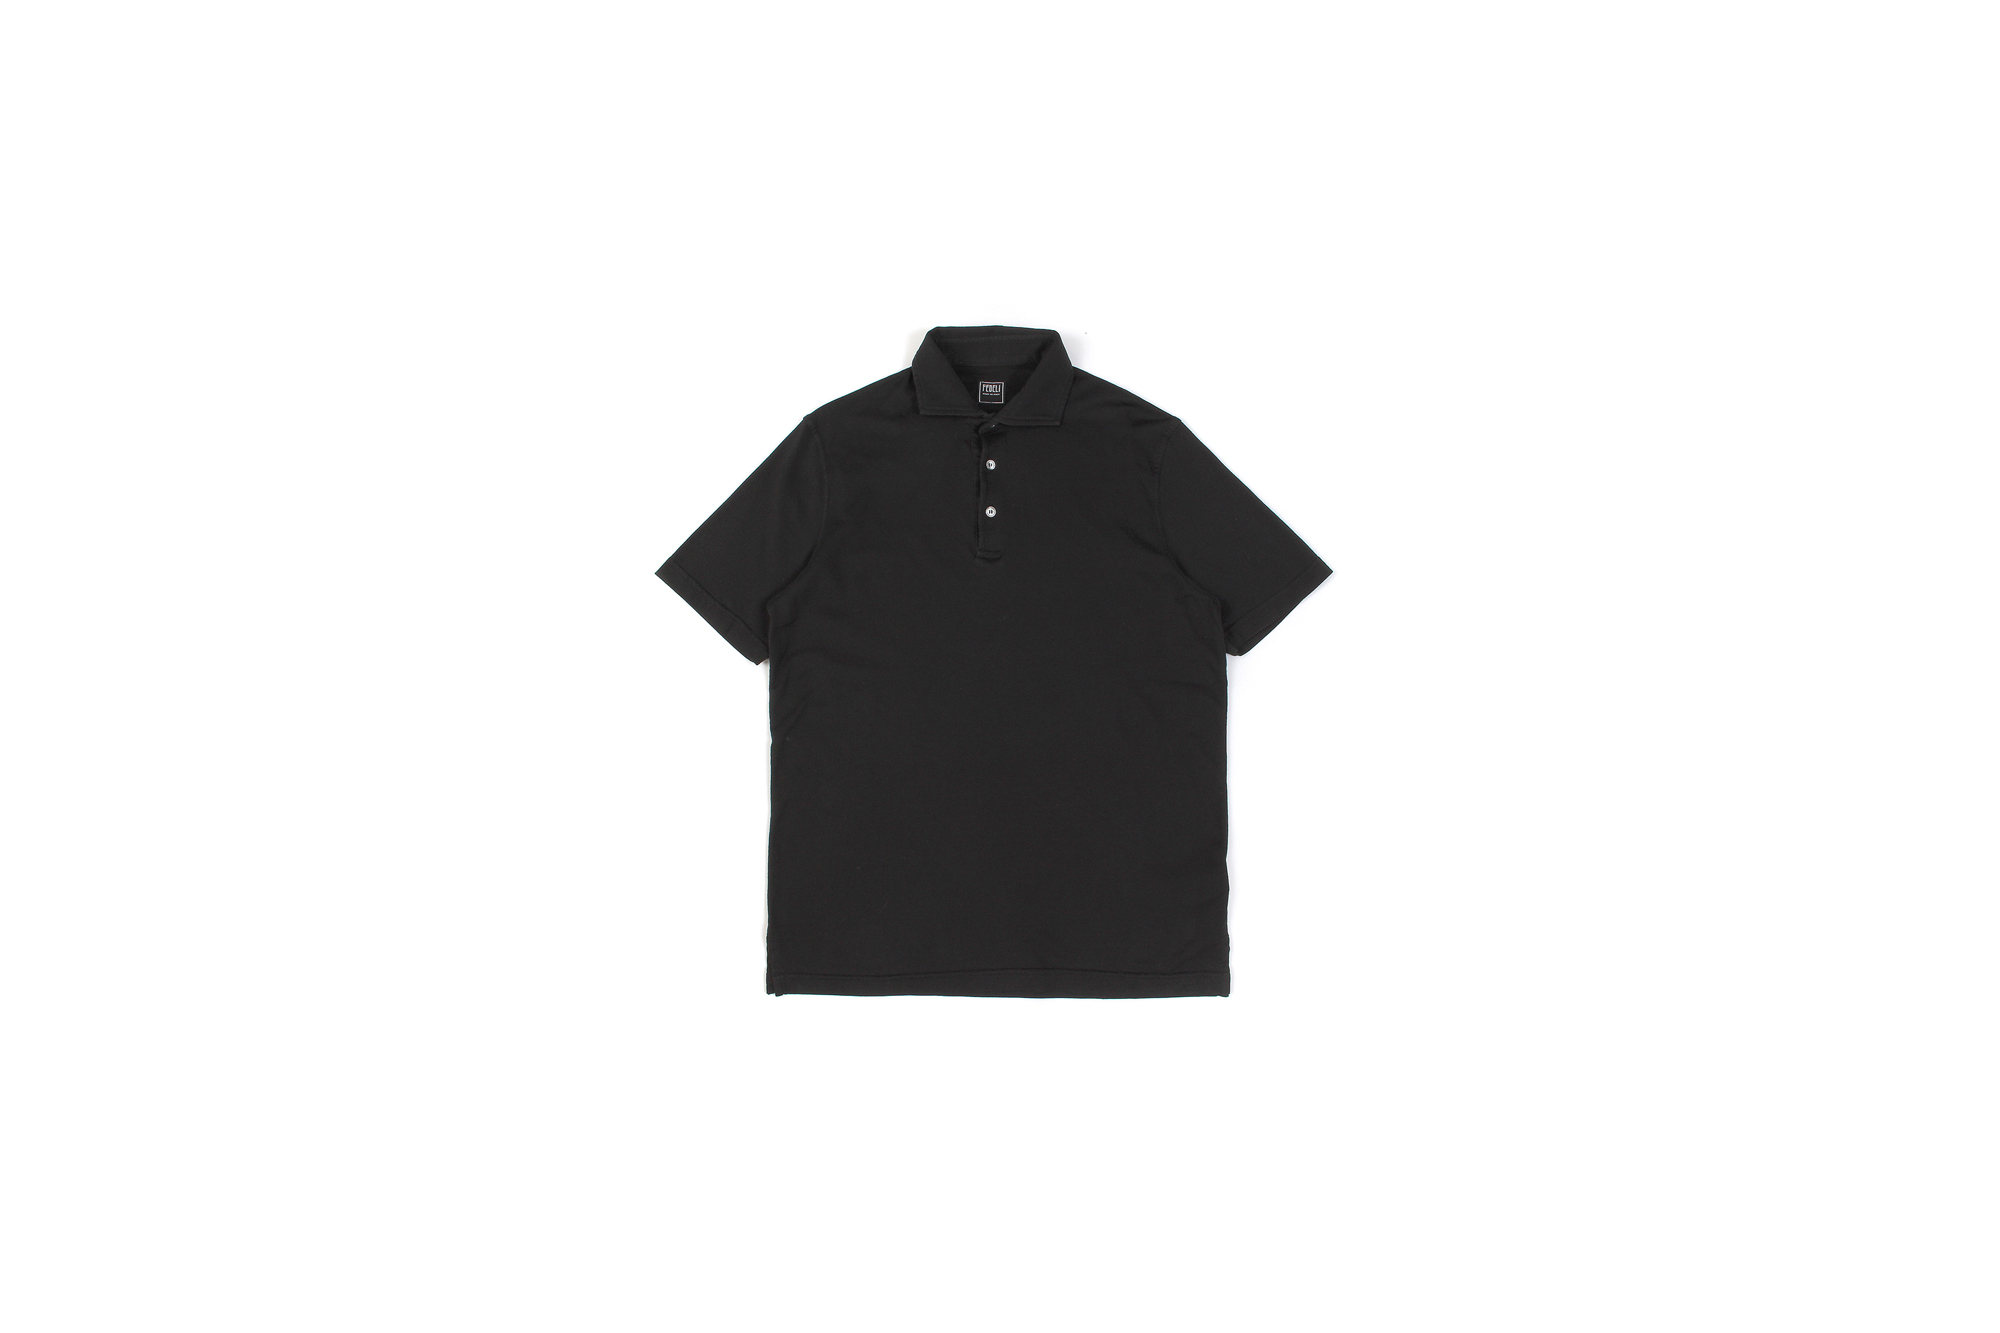 FEDELI (フェデリ) Polo Shirt GIZA45 (ポロシャツ) ギザコットン ポロシャツ BLACK (ブラック・36) made in italy (イタリア製) 2021 春夏新作 愛知 名古屋 Alto e Diritto altoediritto アルトエデリット 半袖ポロシャツ